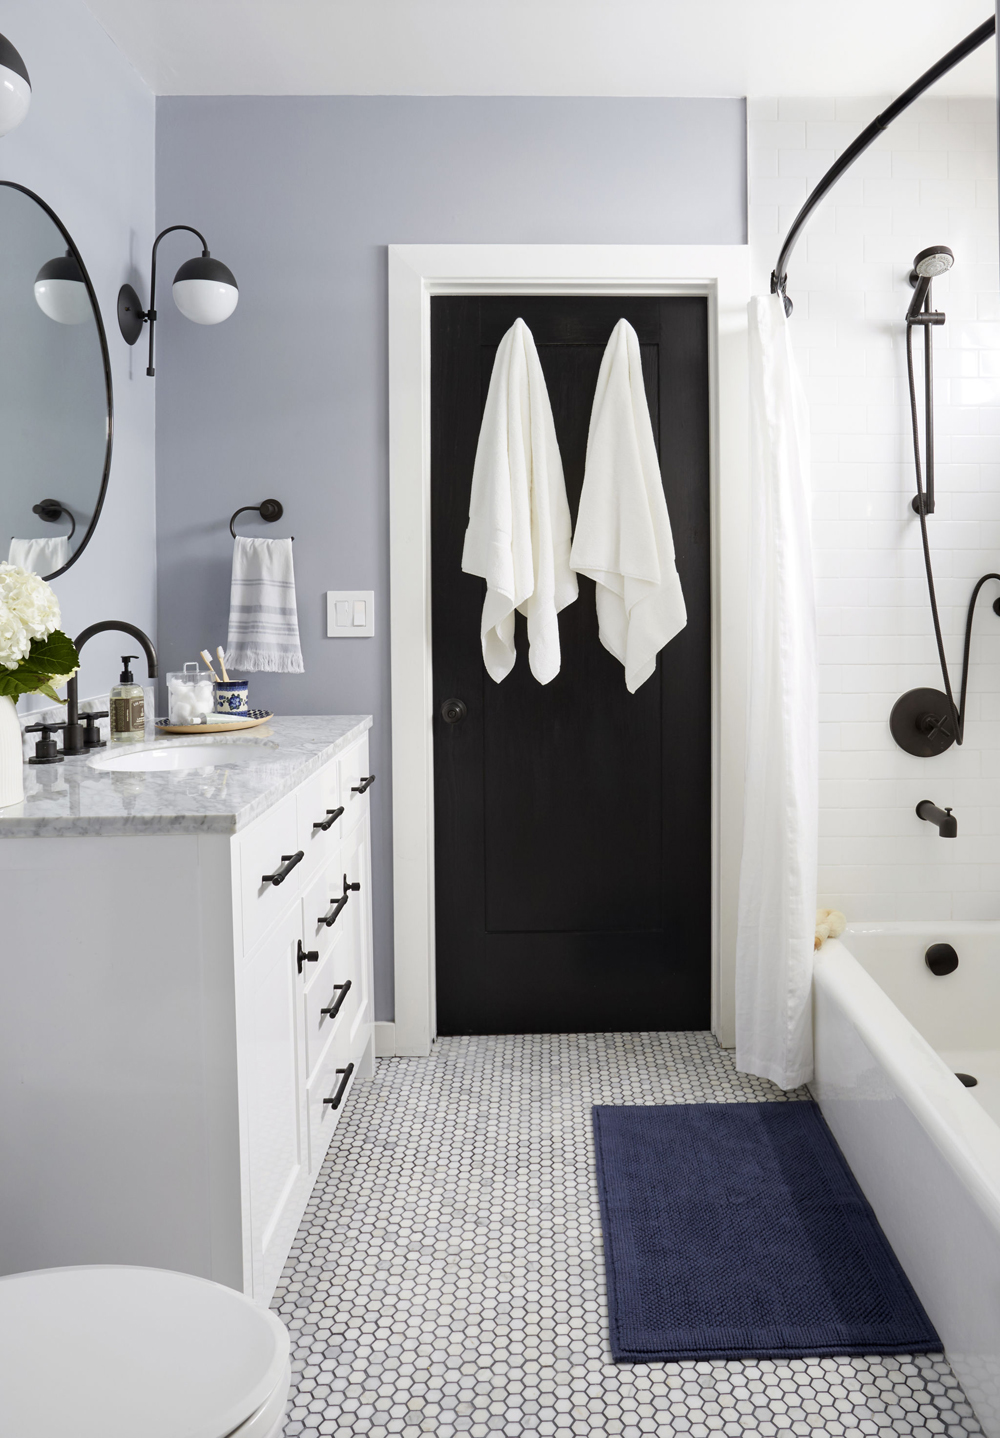 Ginny_Macdonald_Bathroom_Design_Modern-Traditional_Full-Service_01_1000PX